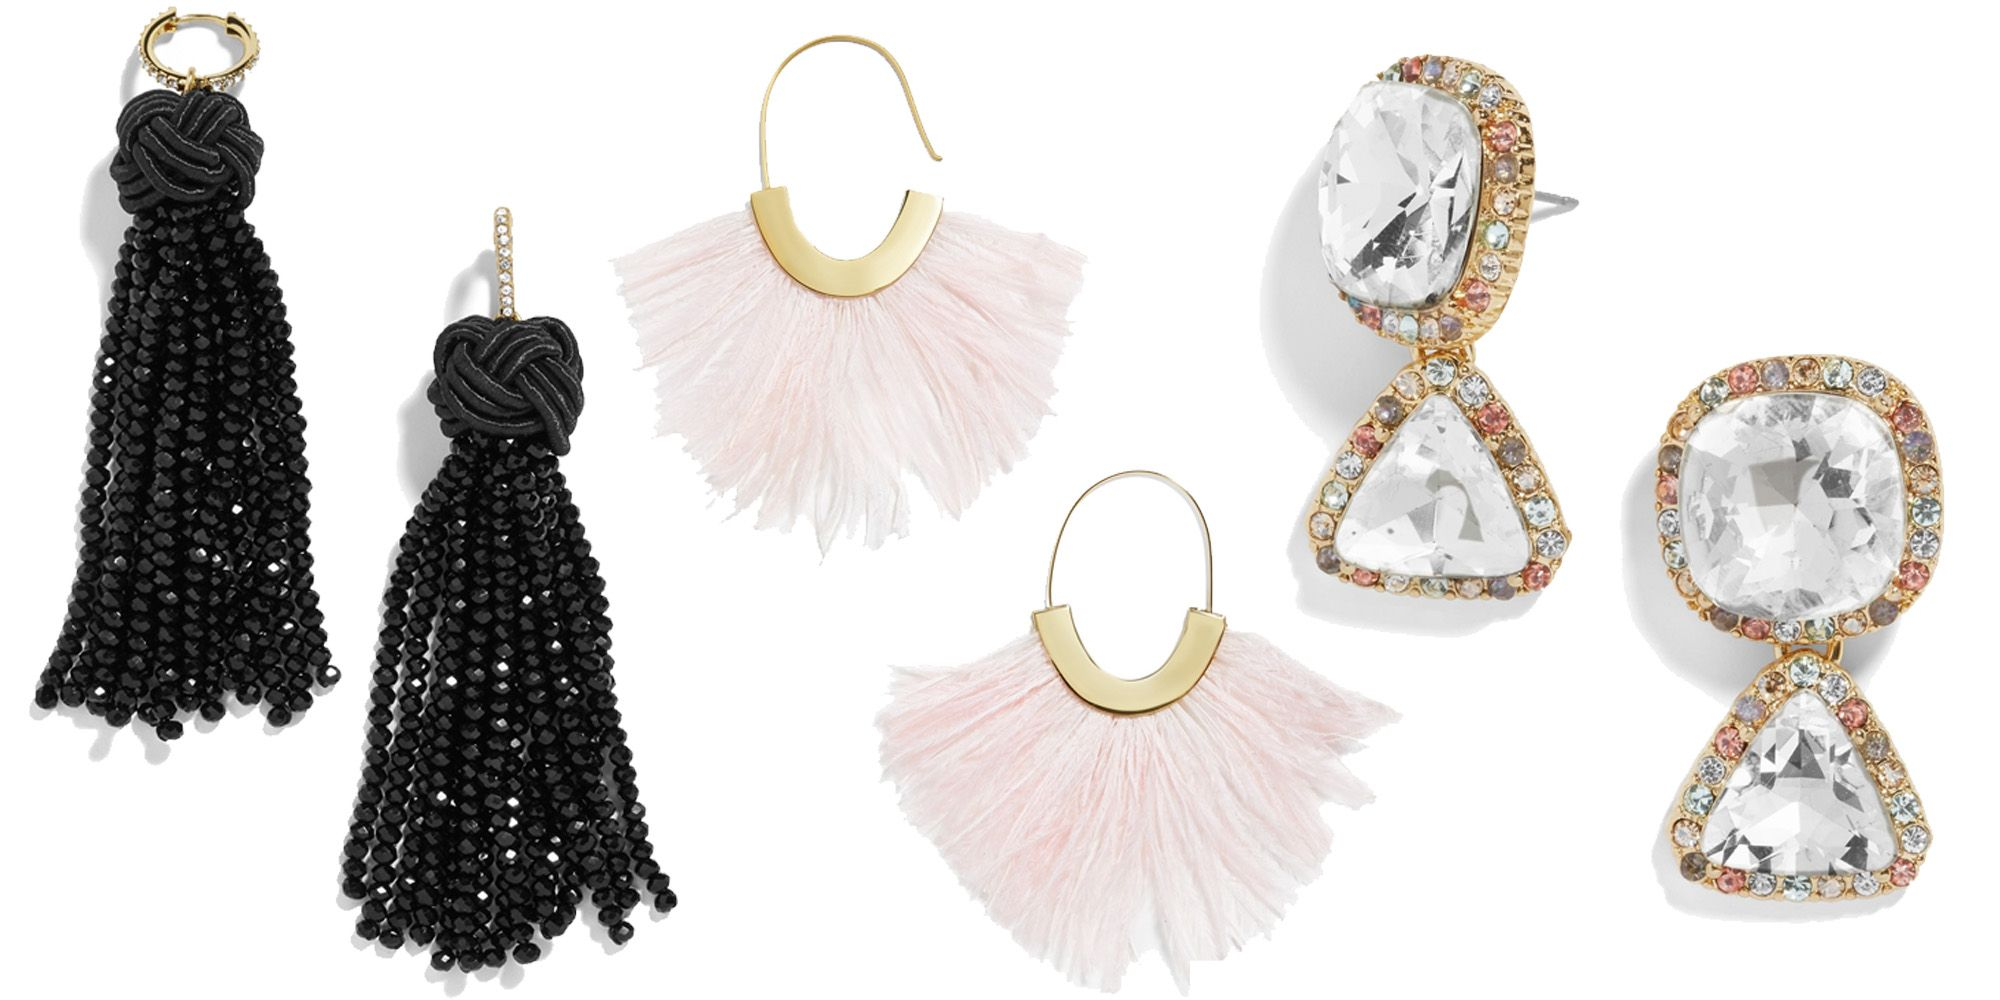 BaubleBar's End of Season Sale Is The Perfect Excuse to Treat Yourself